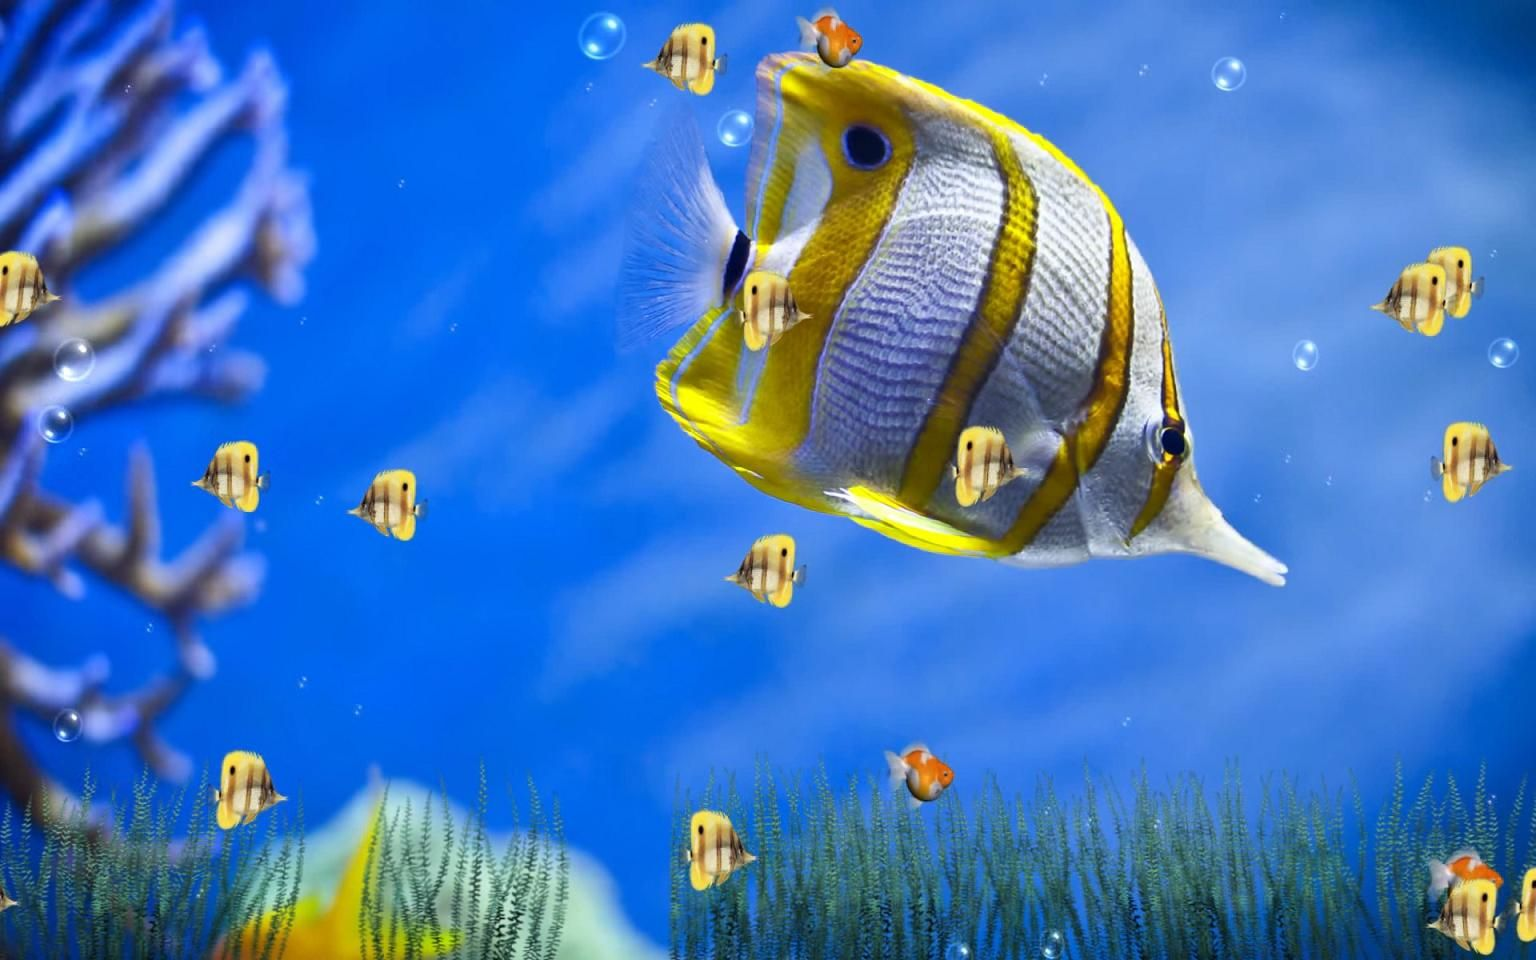 moving fish backgrounds no downloads Animated Wallpapers 1536x960